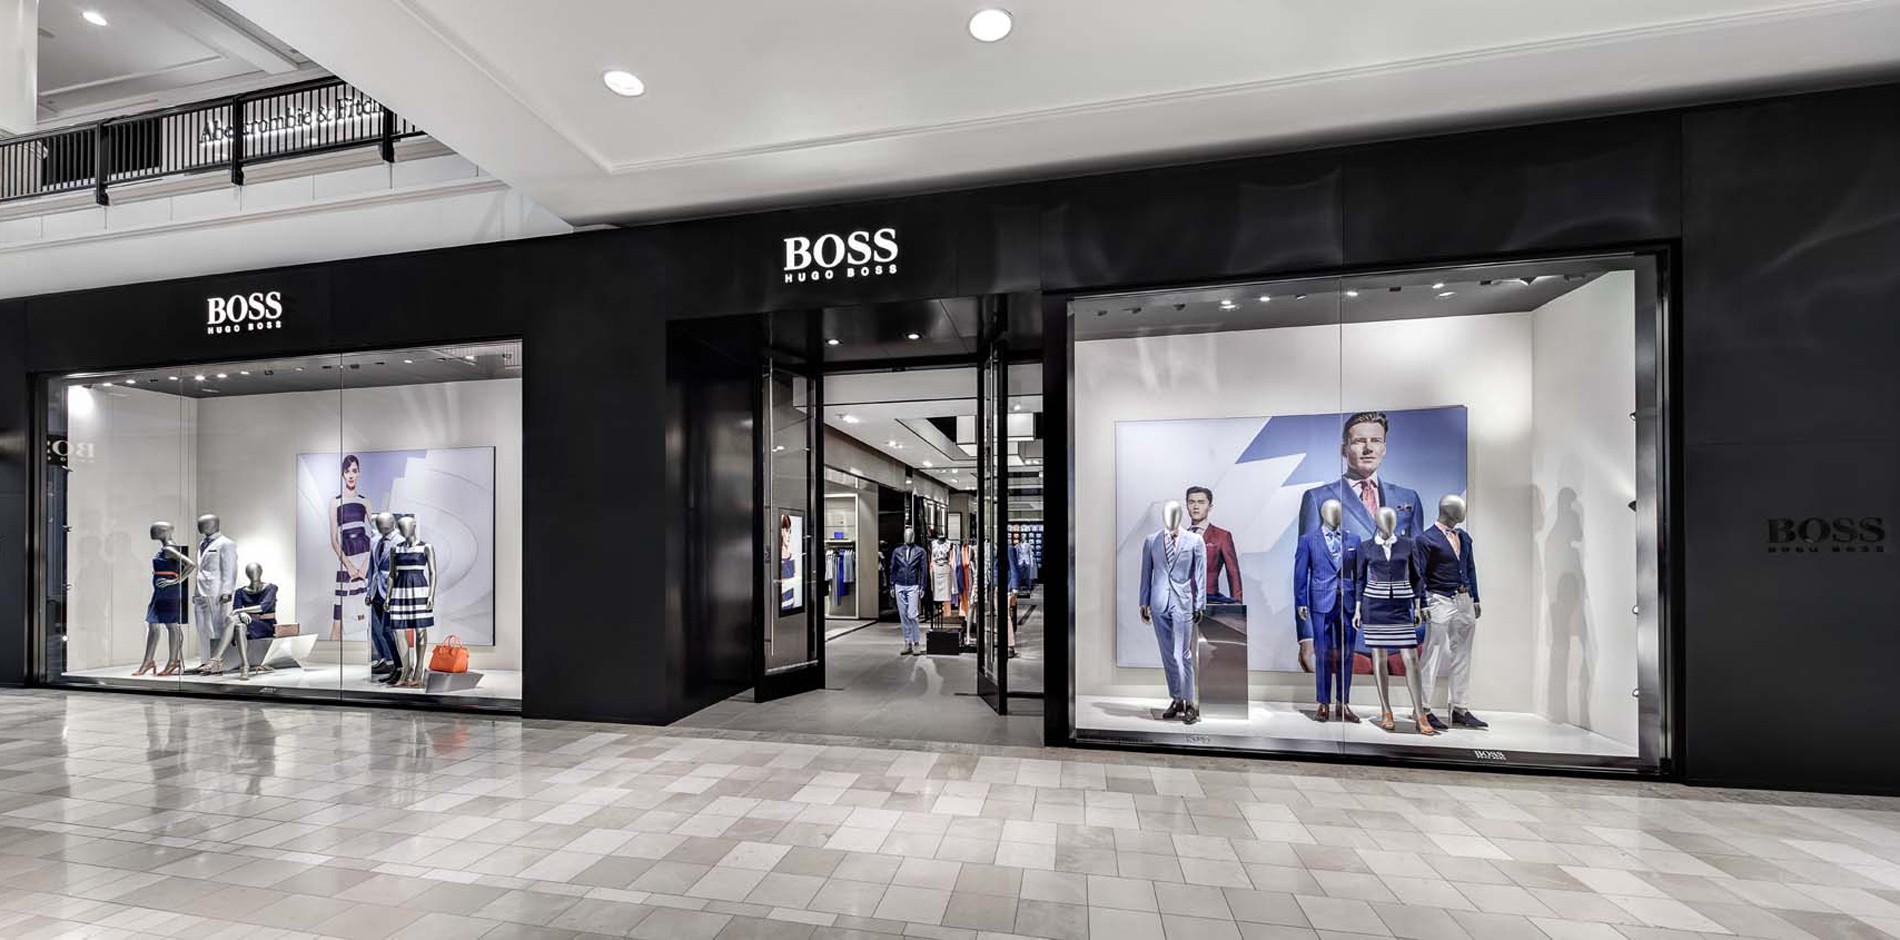 summary hugo boss Join hugo boss for an urban journey hugo man is the guy who wants to live life on his own terms a fragrance for the true outlaws the ones who believe rules are made to be challenged and that no matter what, you should work to achieve your maximum potential.